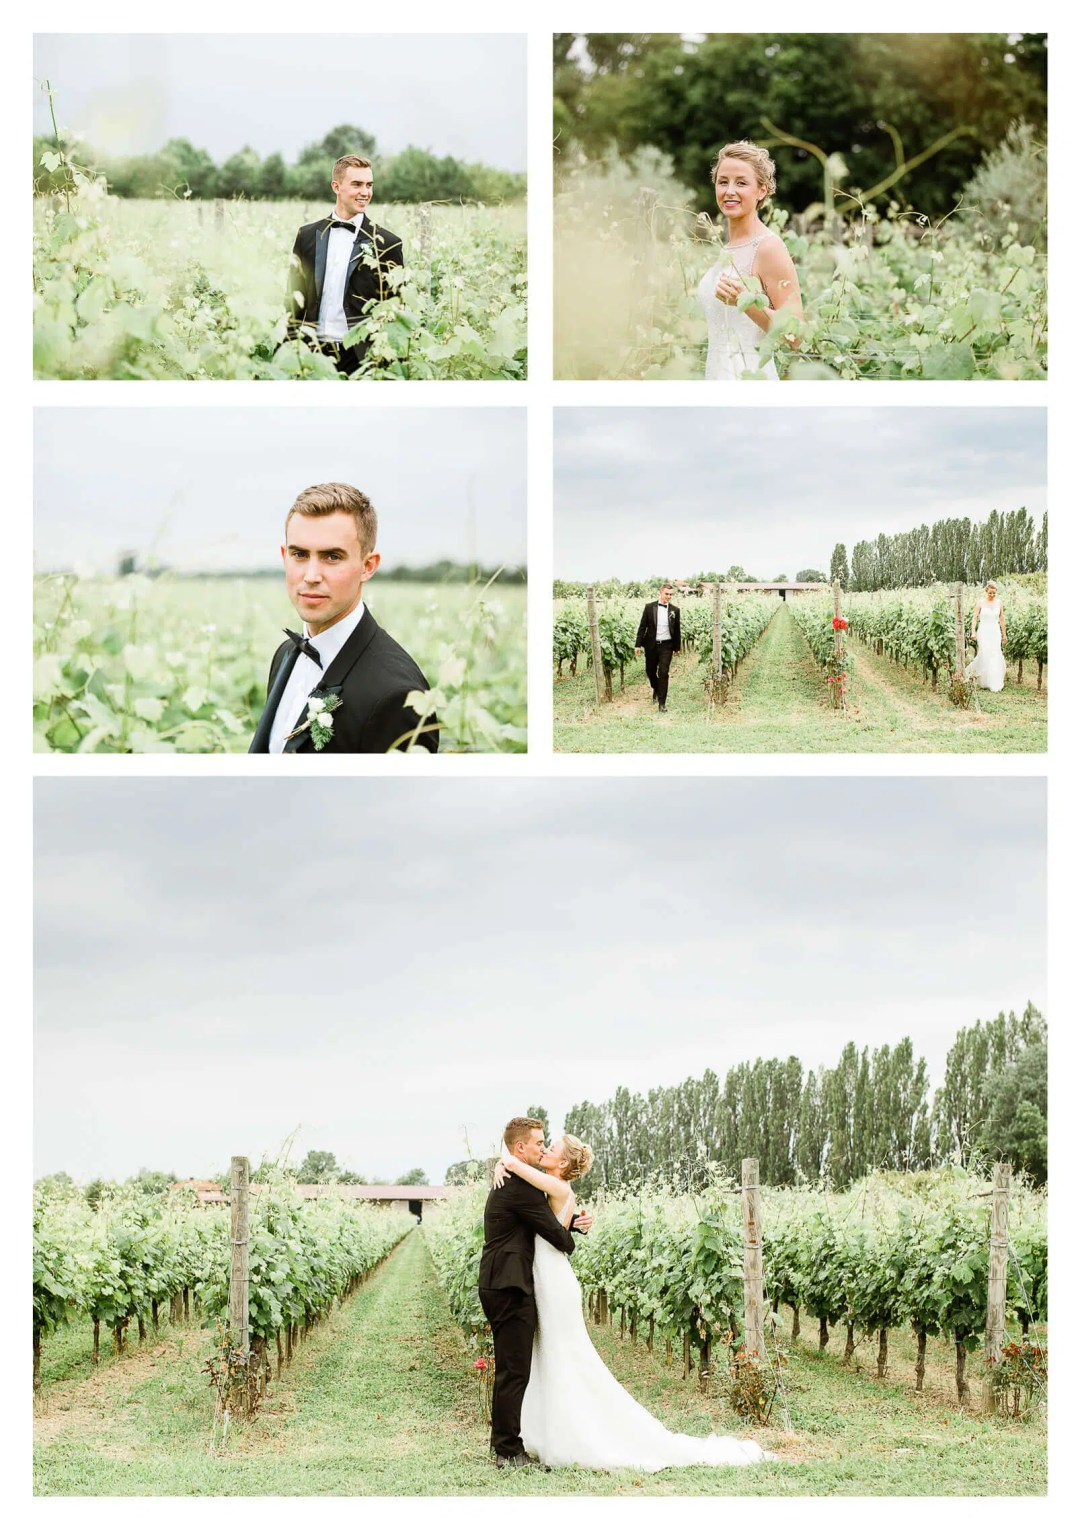 Unique first look in vineyard at Fossa Mala Italy | Pordenone photographer